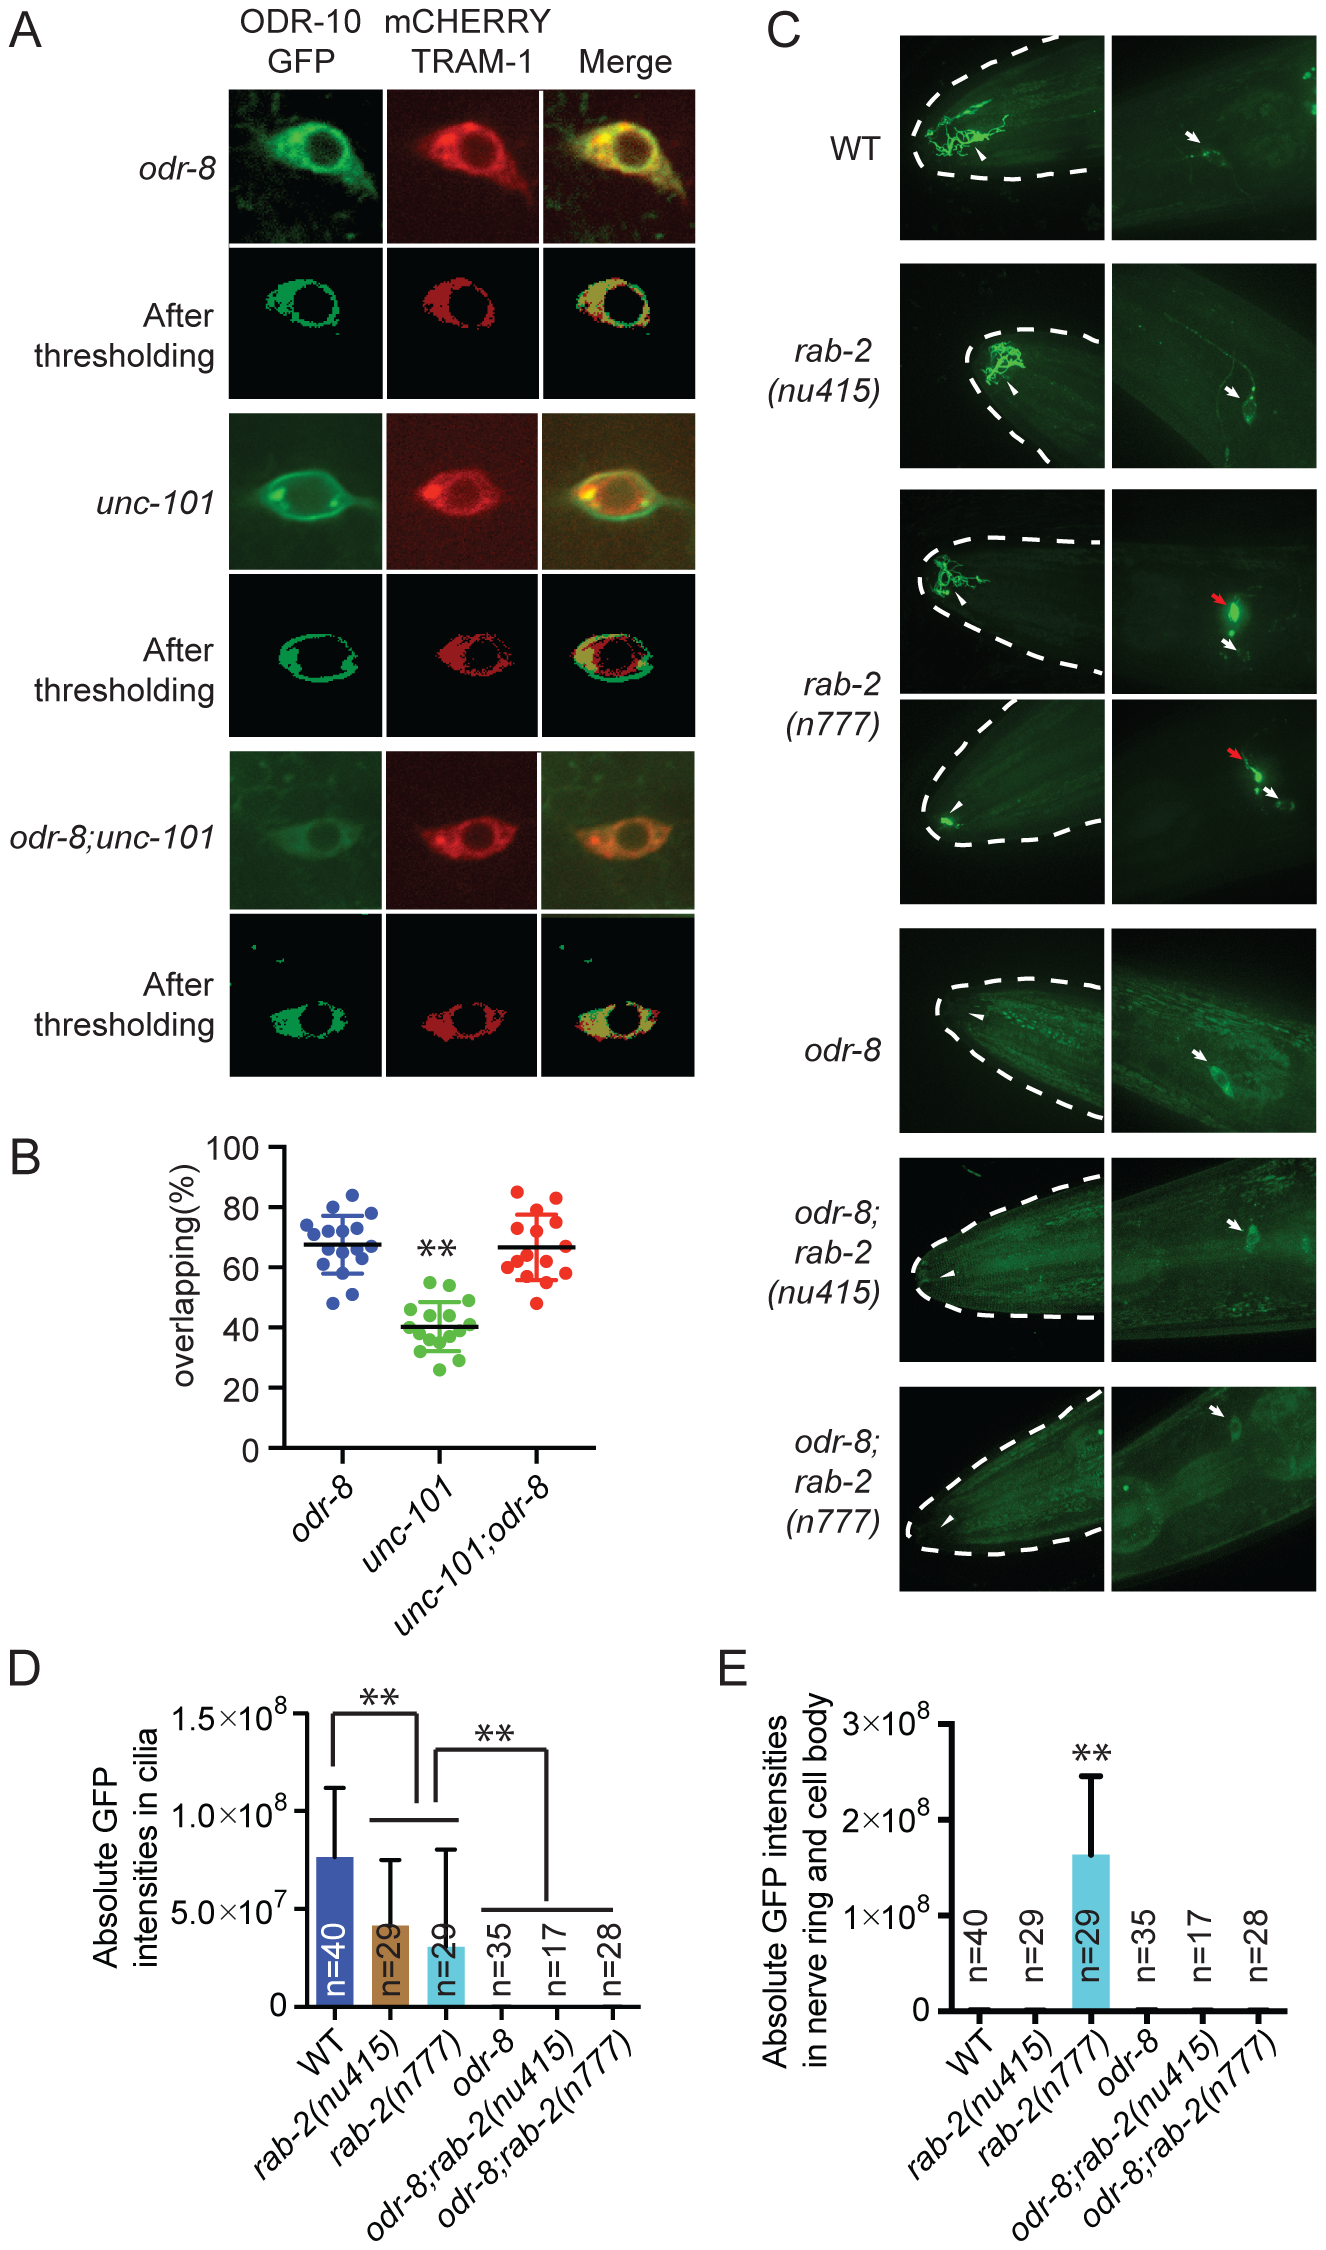 ODR-8 acts in an early step in ODR-10 trafficking to the AWA cilia.